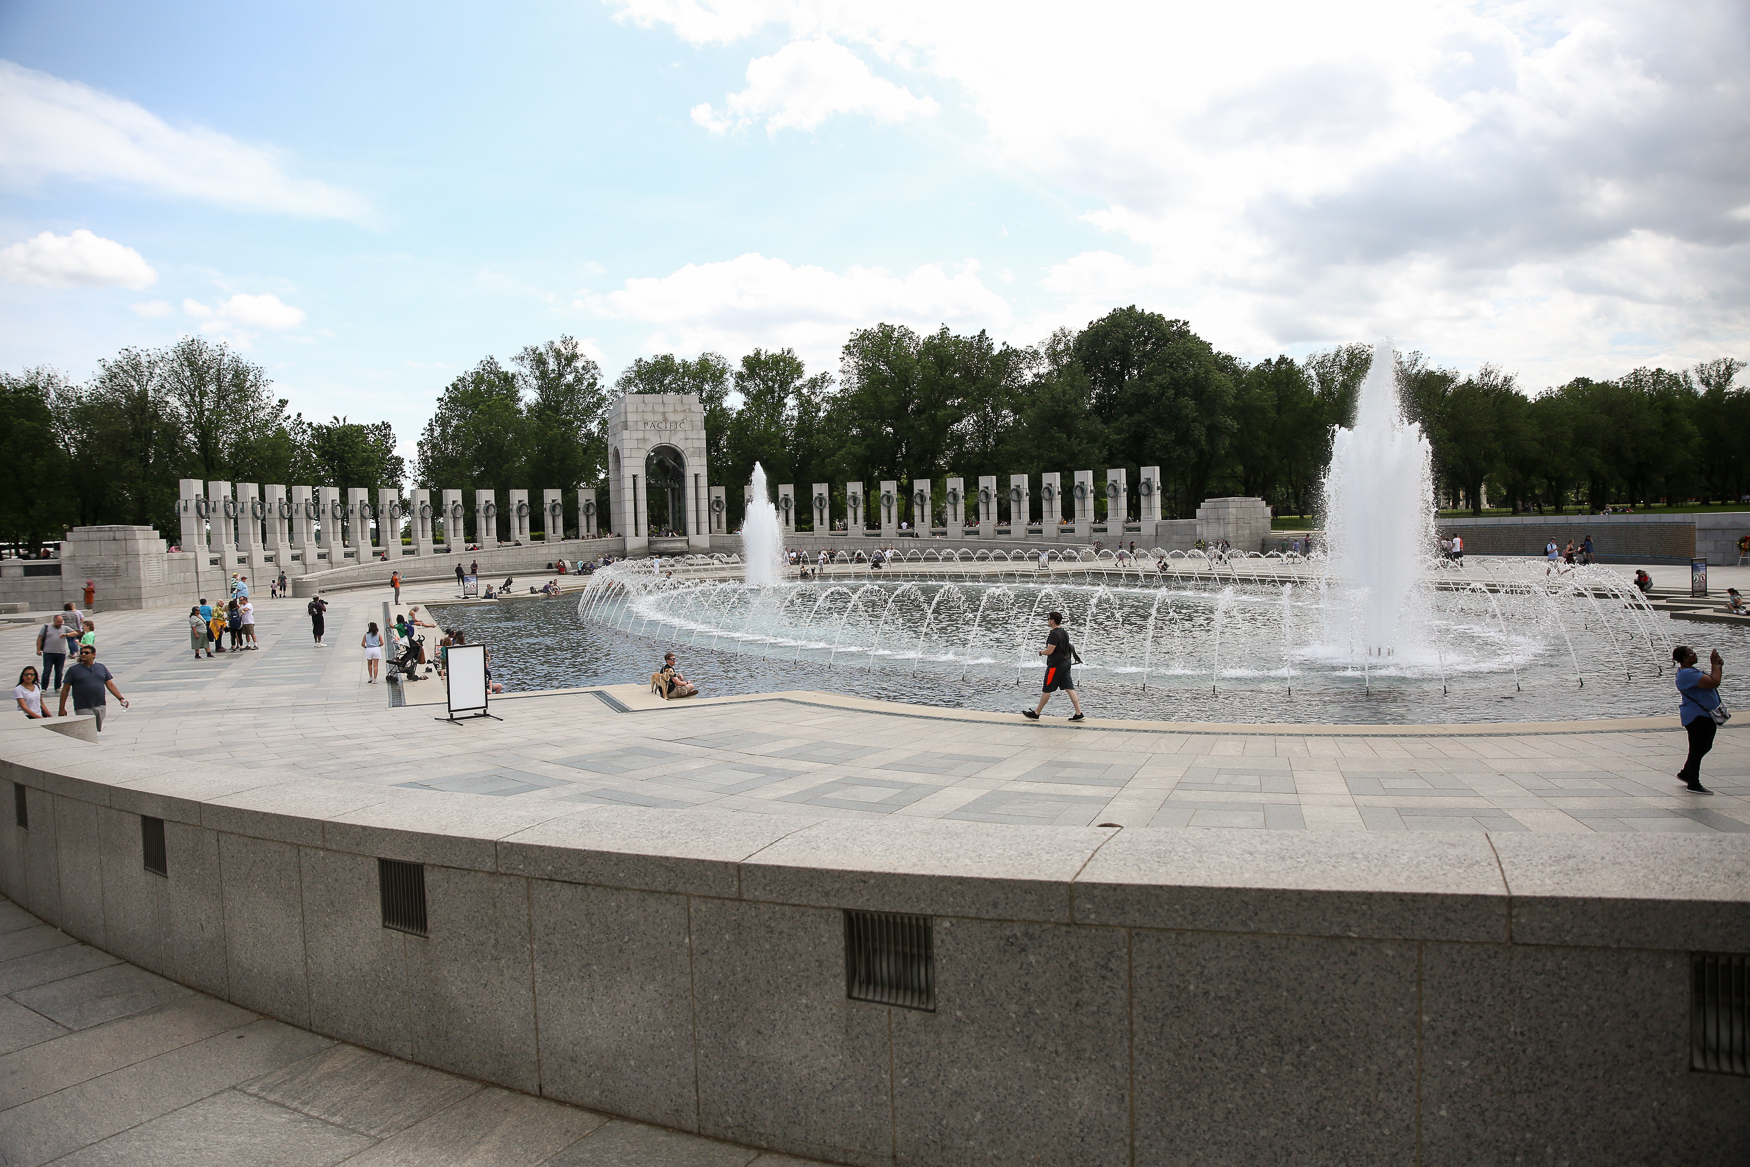 Fun fact! The WWII Memorial received 4.6 million visitors in 2018.